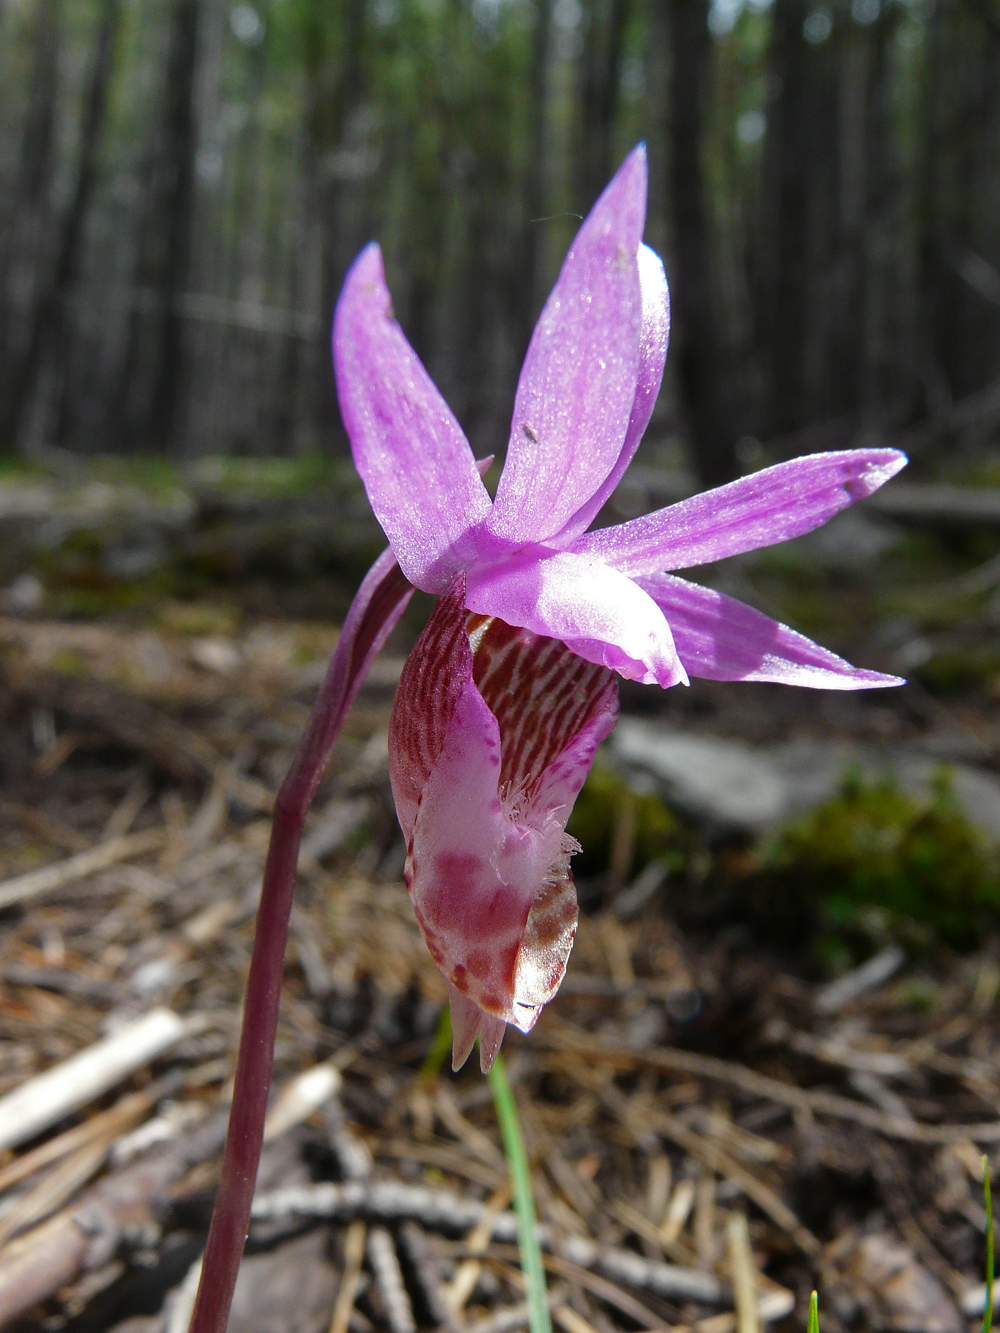 Calypso bulbosa is rare in NY, NH, WI, MI, VT, Sweden, and Finland. Declining at the southern edge of range. Climate change is a threat.